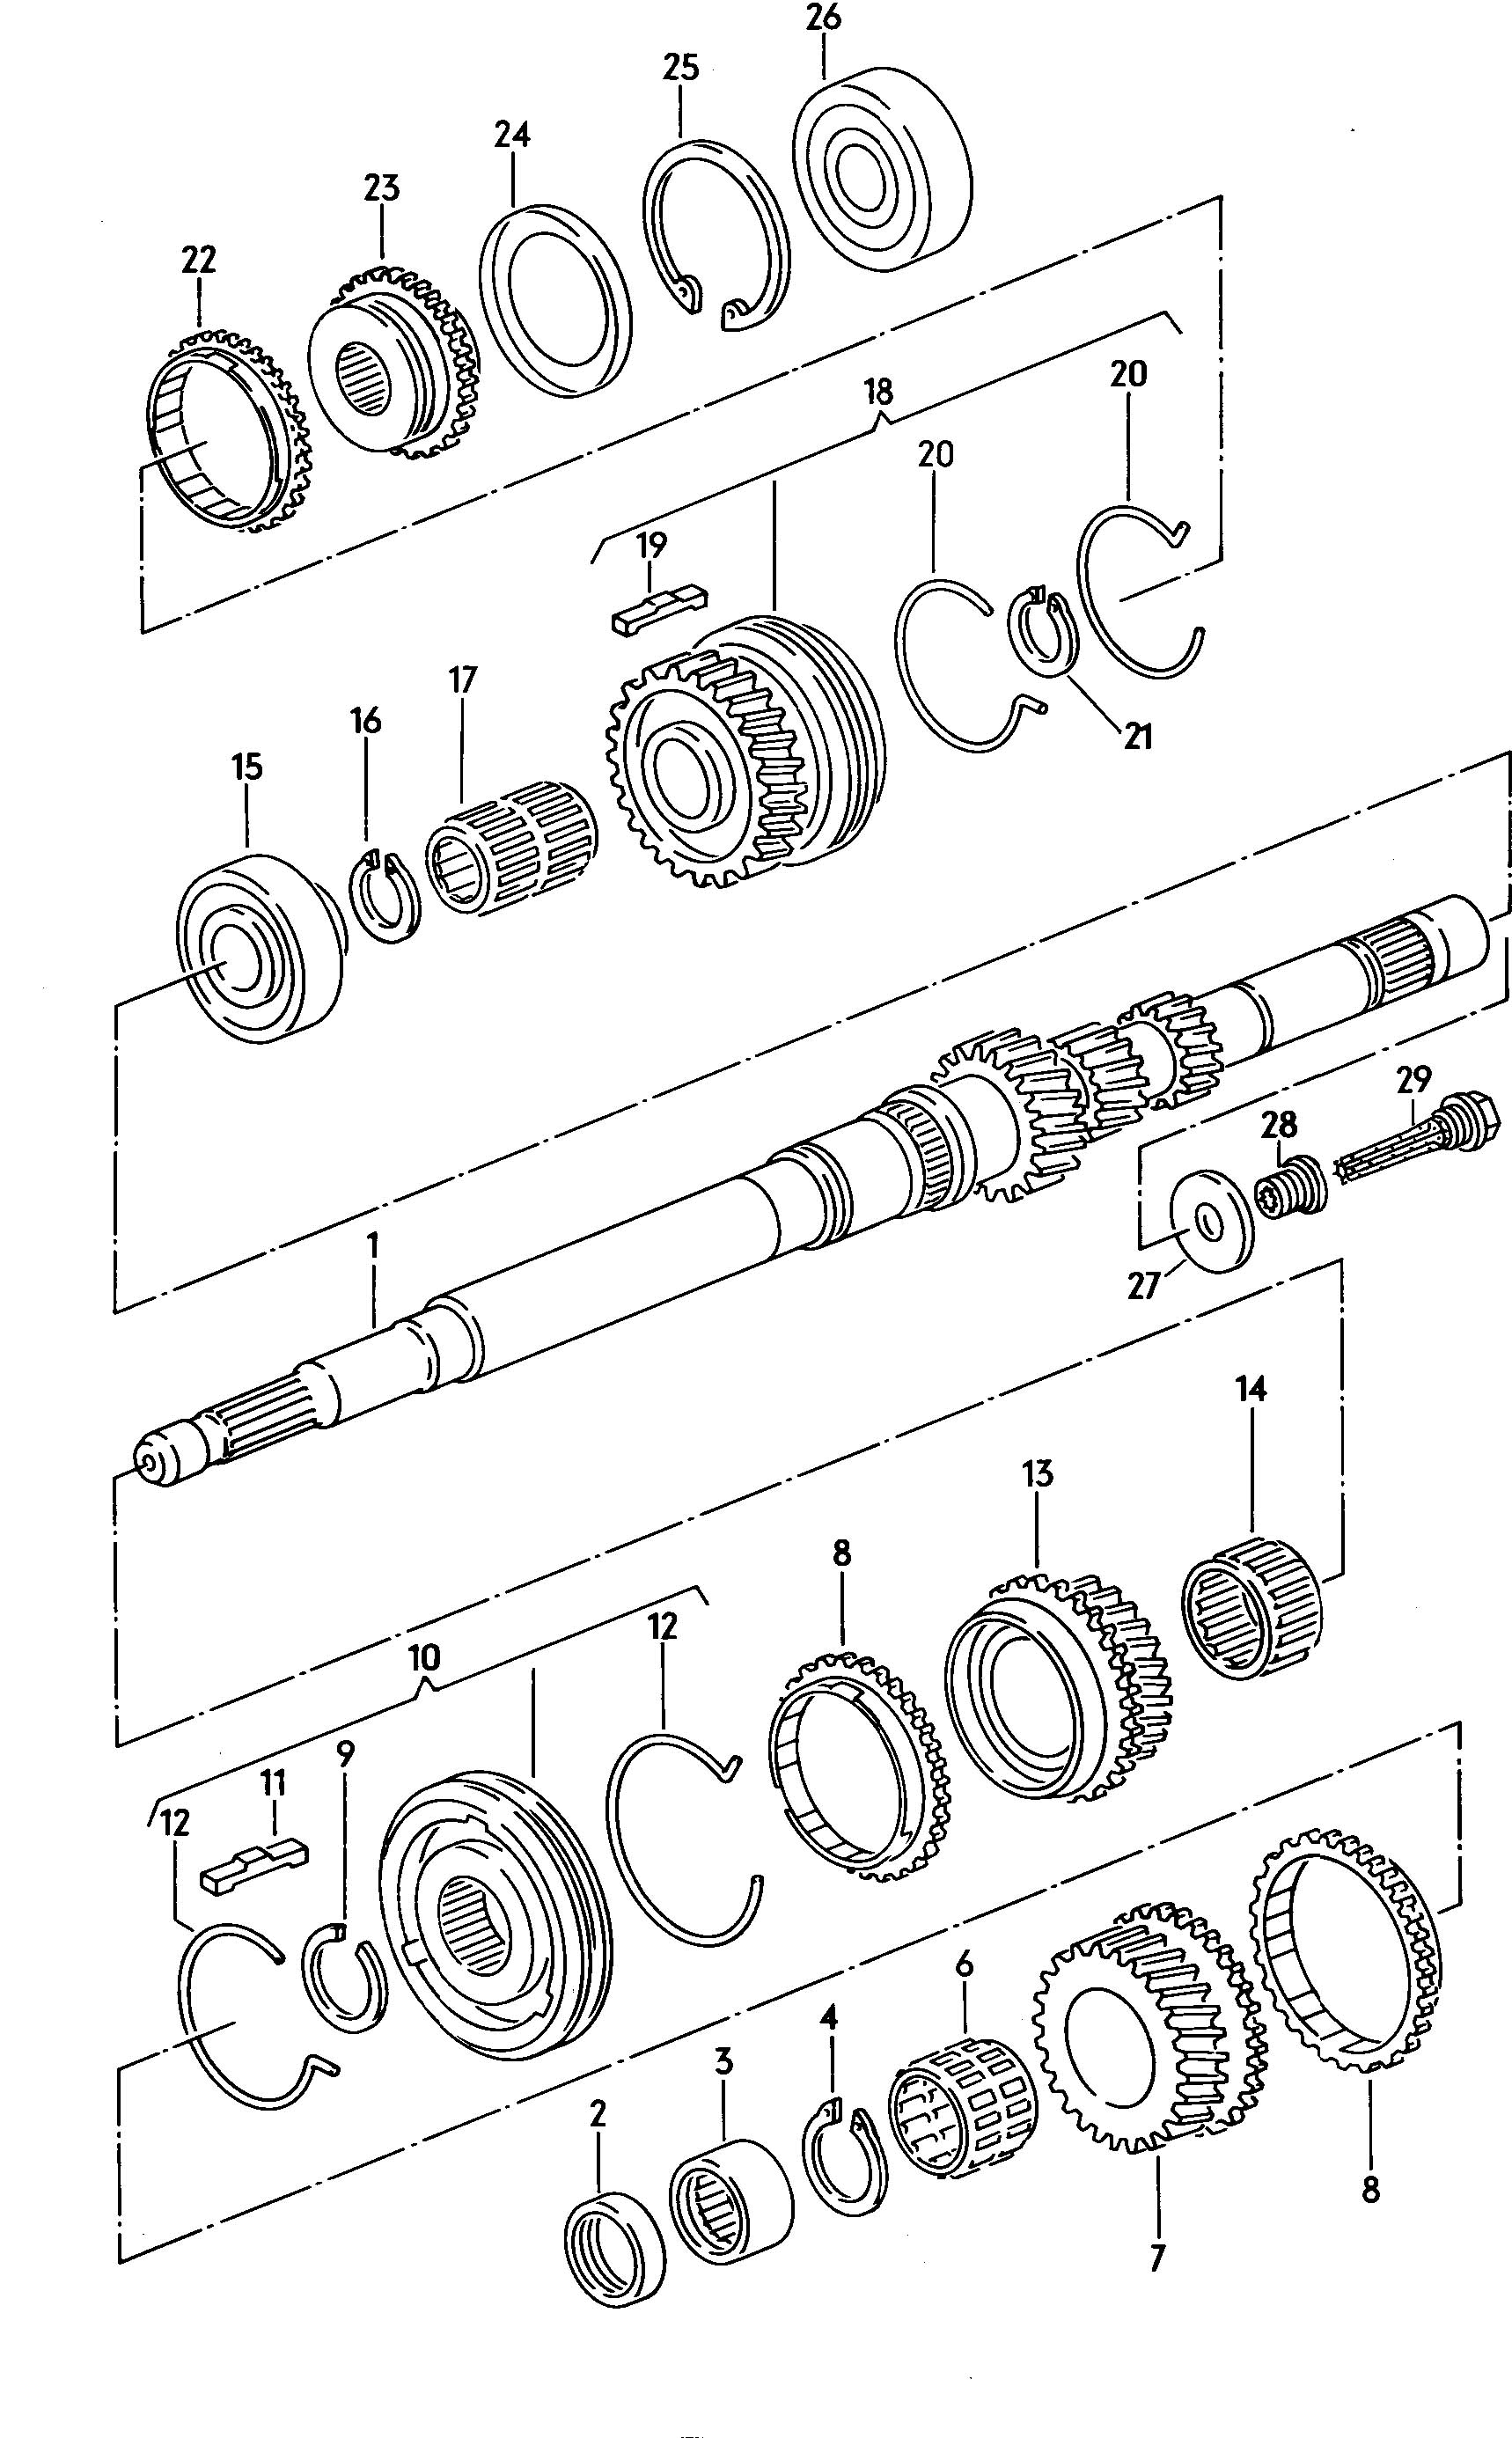 Gears and shafts drive shaft